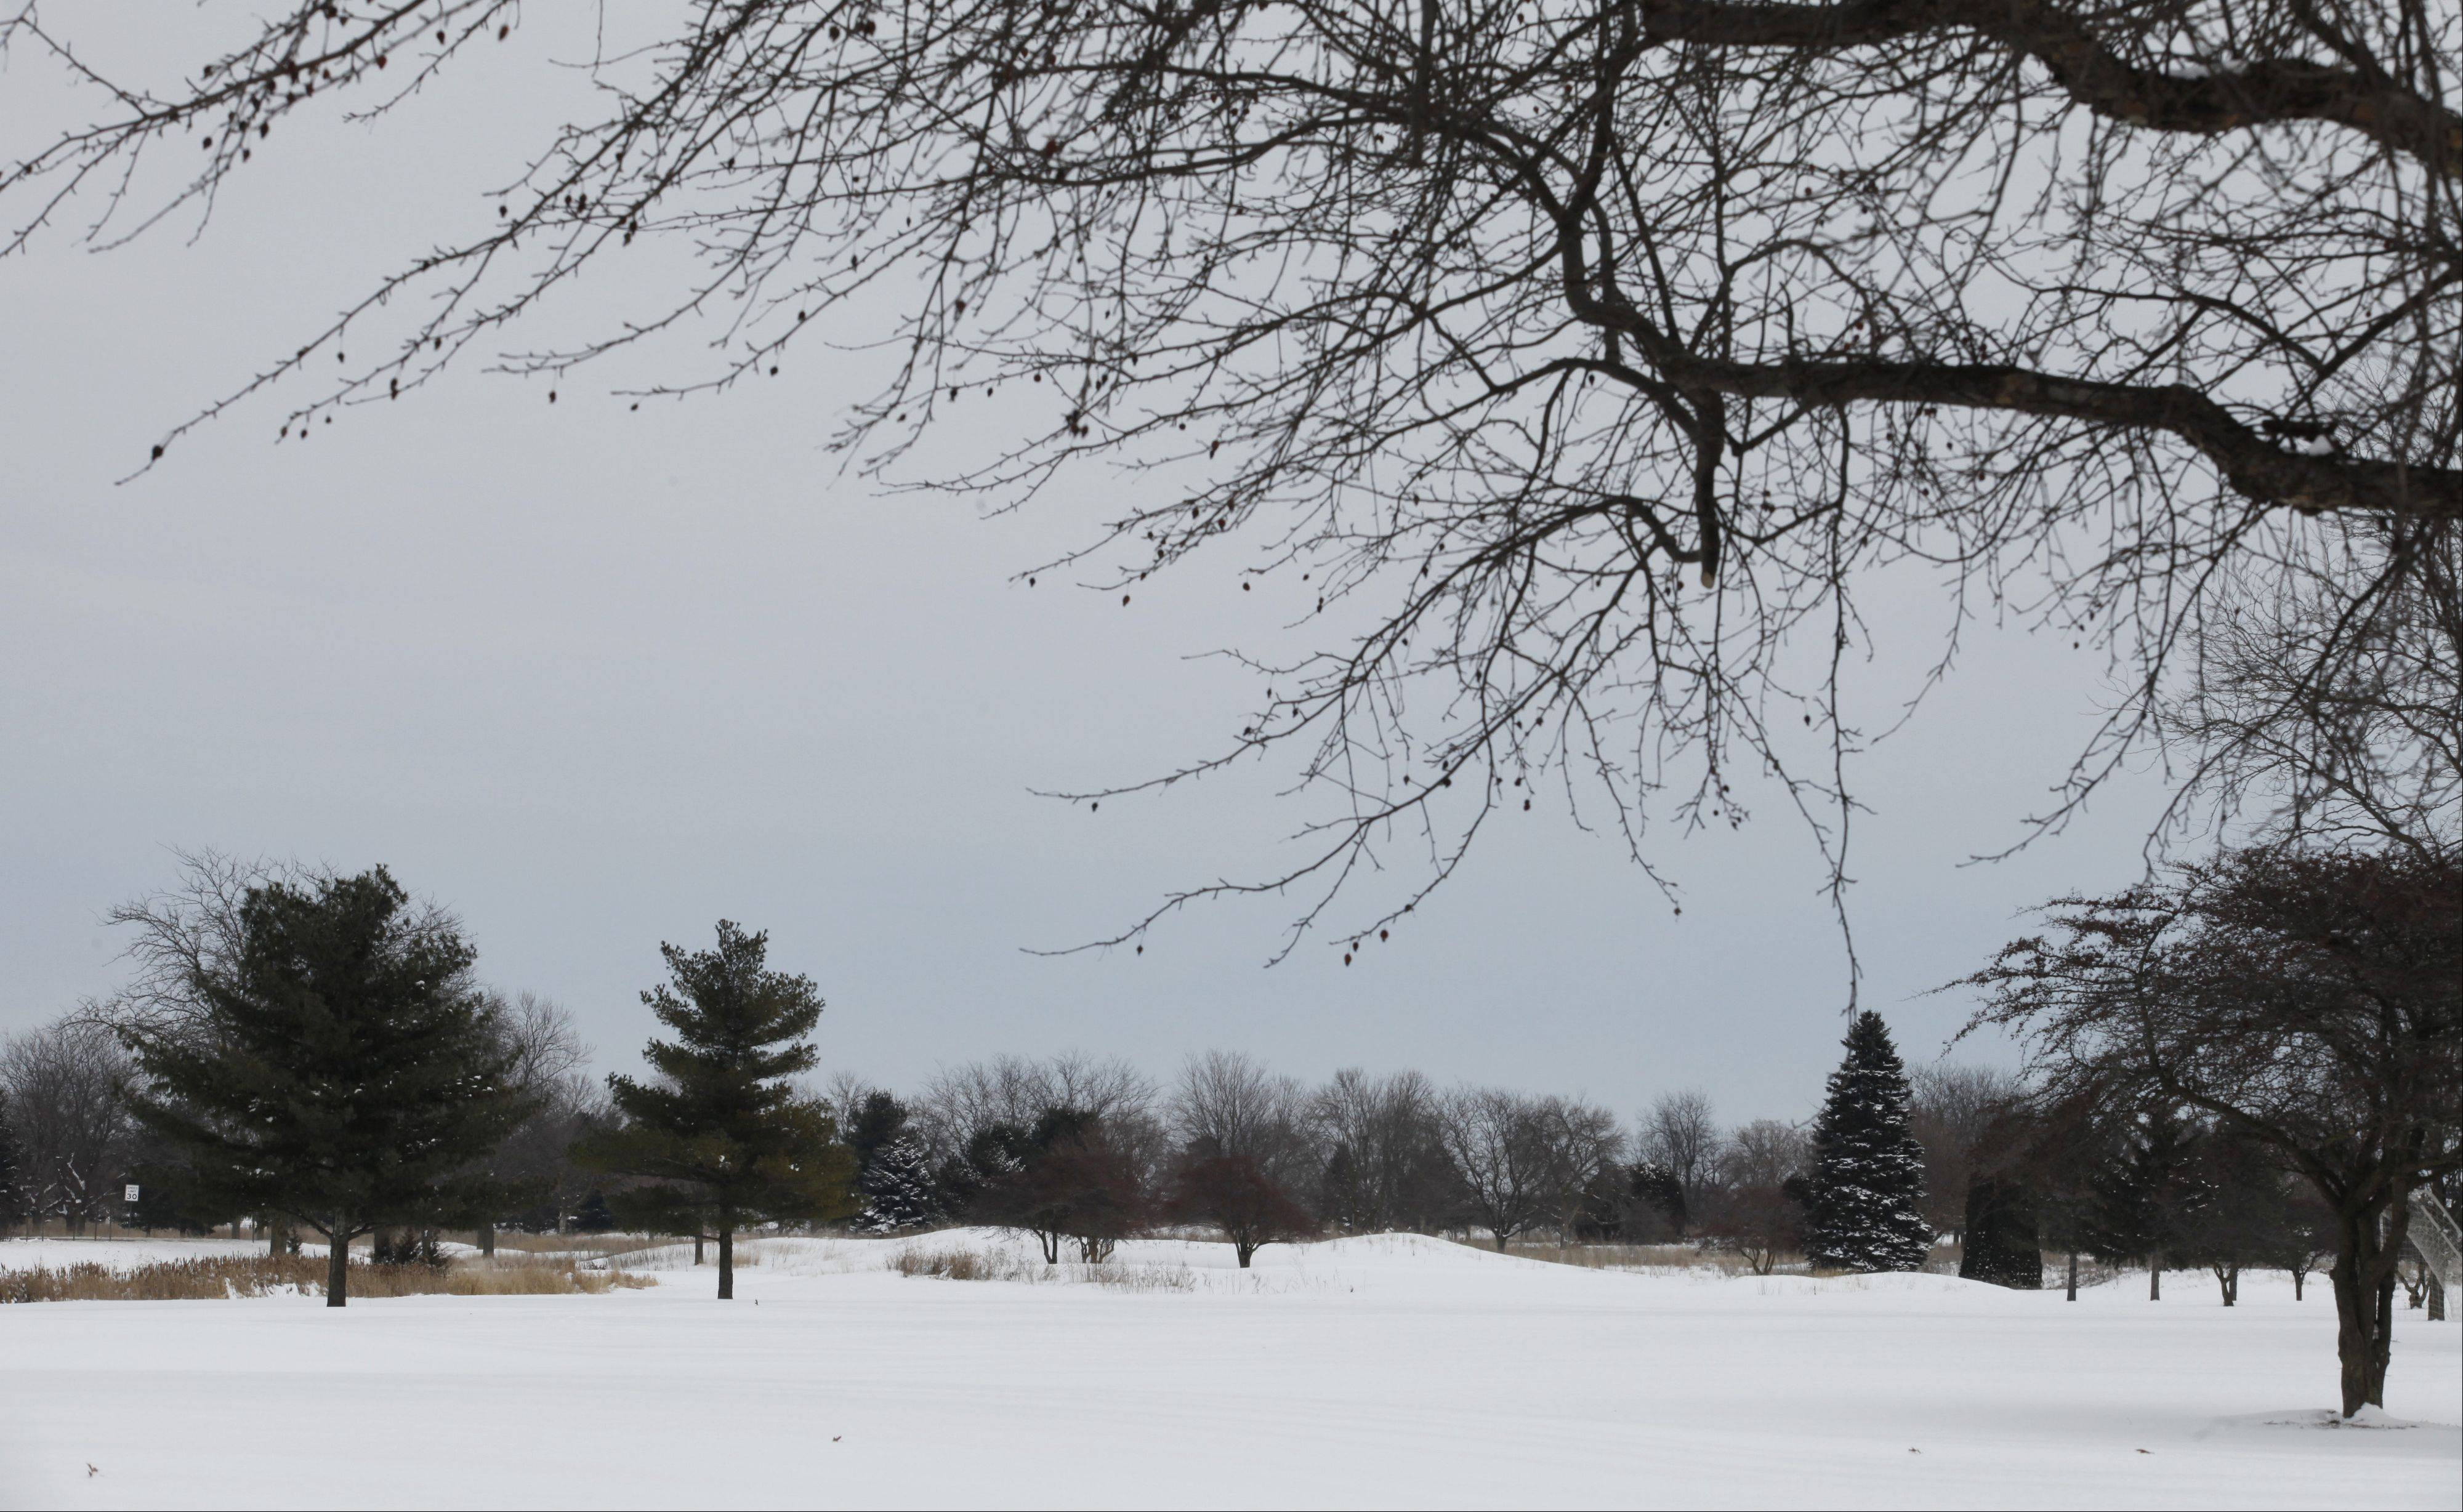 ECC recently finalized the purchase of the 41 remaining acres of the former Spartan Meadows Golf Course. The college has no immediate plans for the property, which it purchased as part of an $8 million deal with the city of Elgin.